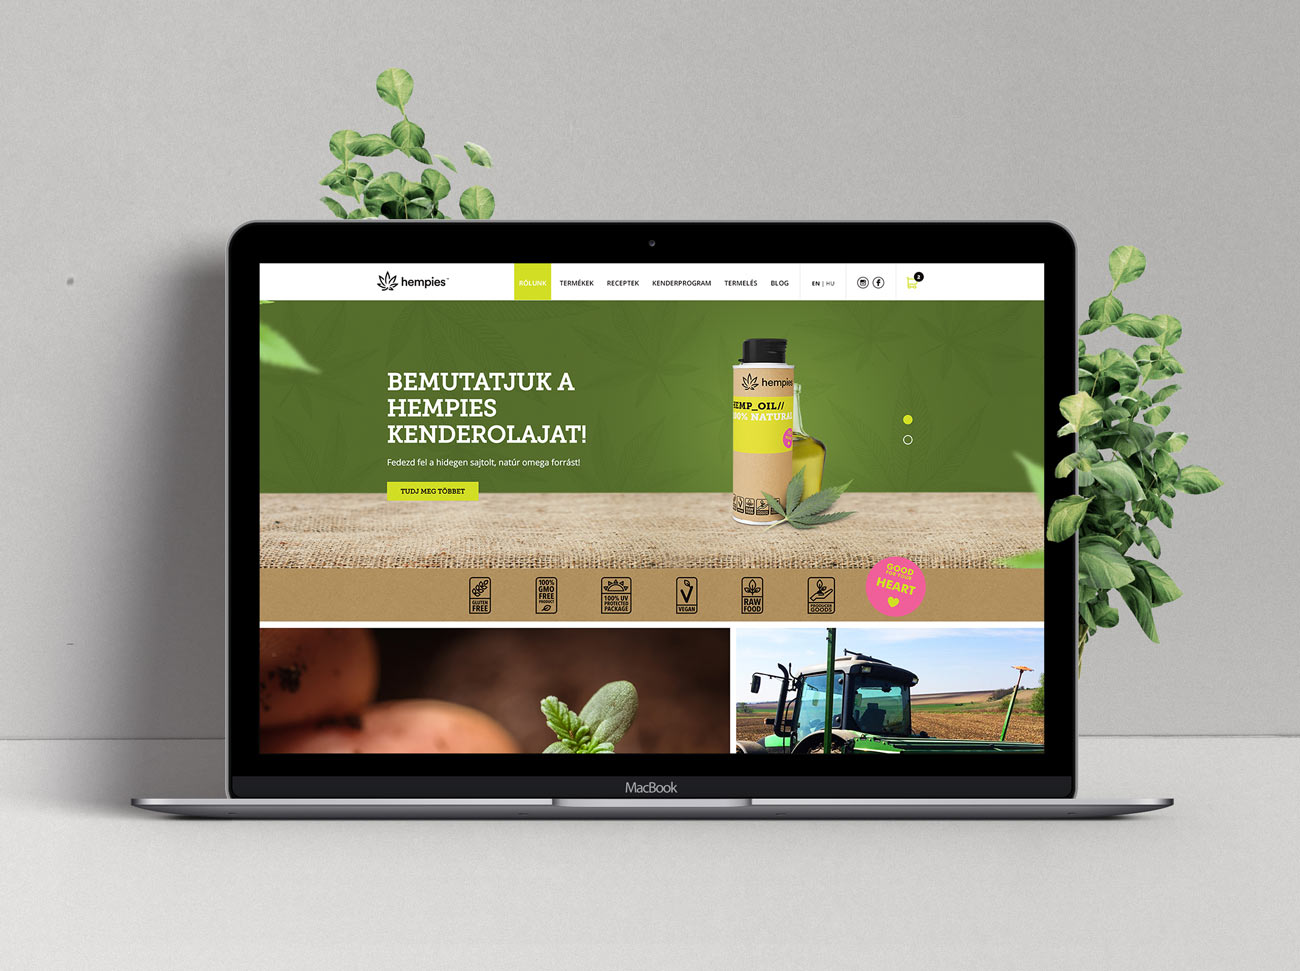 Hempies webshop reference